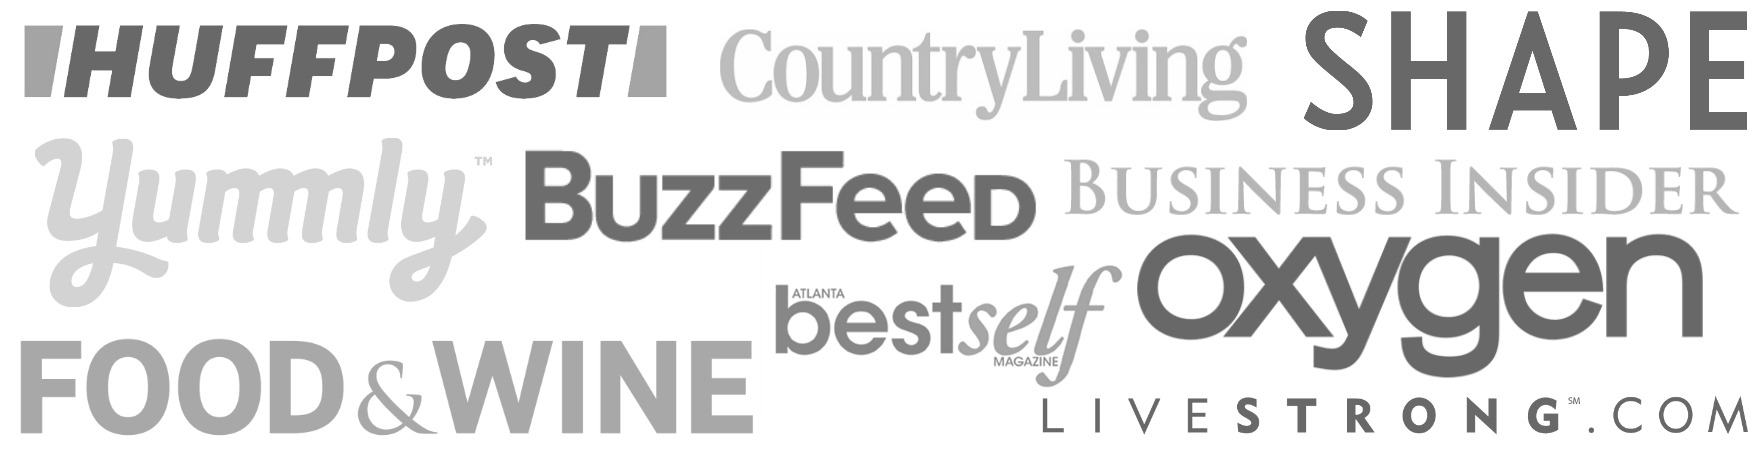 gray magazine logos that the website has been featured in